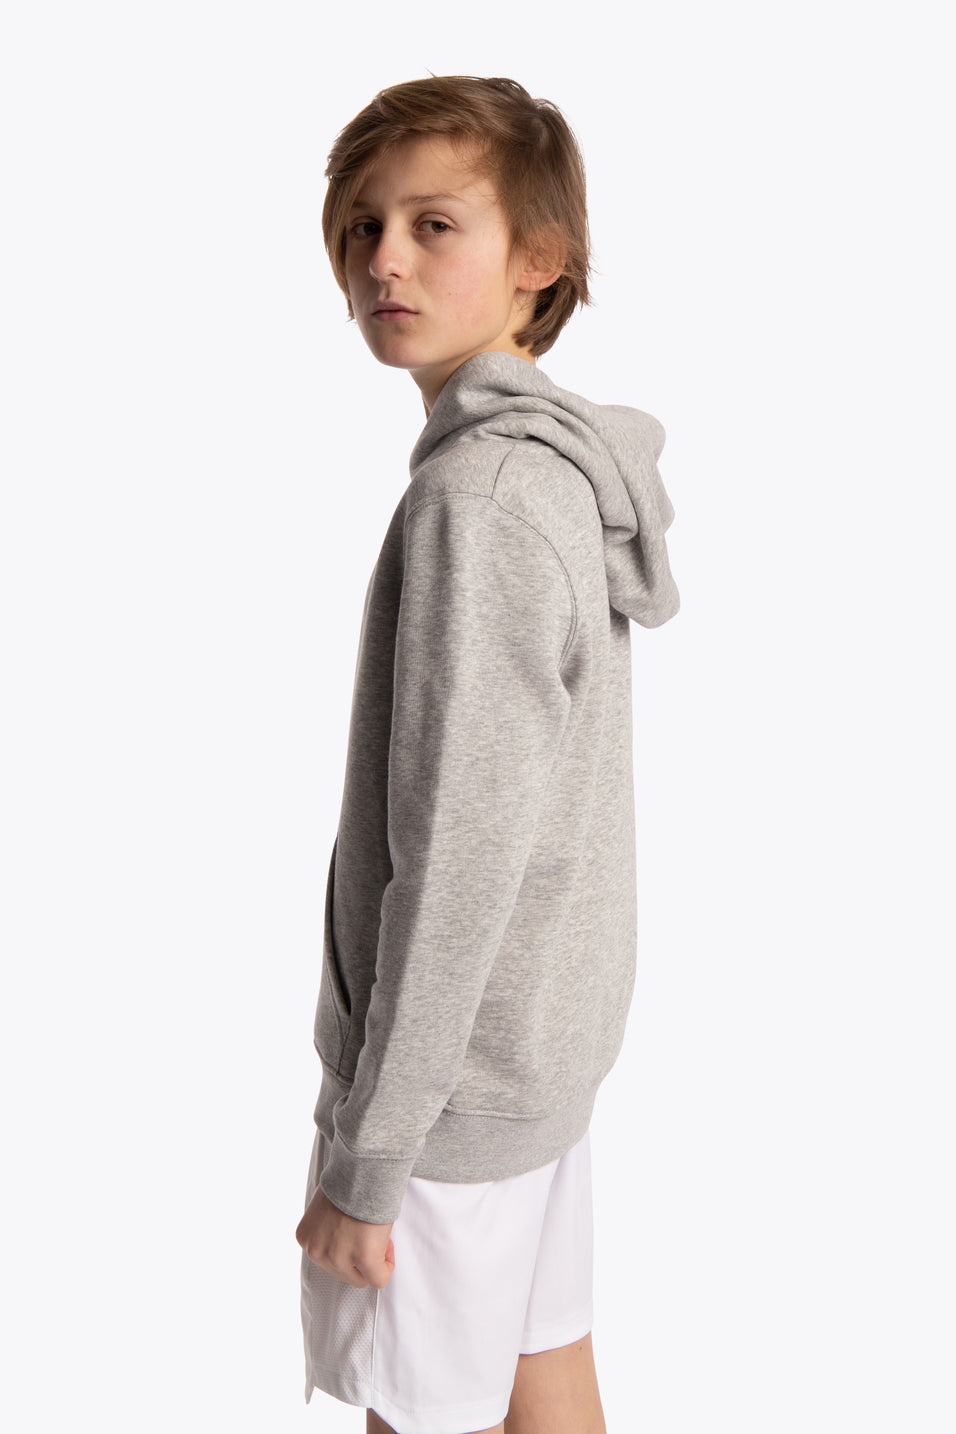 Deshi Hoodie Pollocs Star - Heather Grey